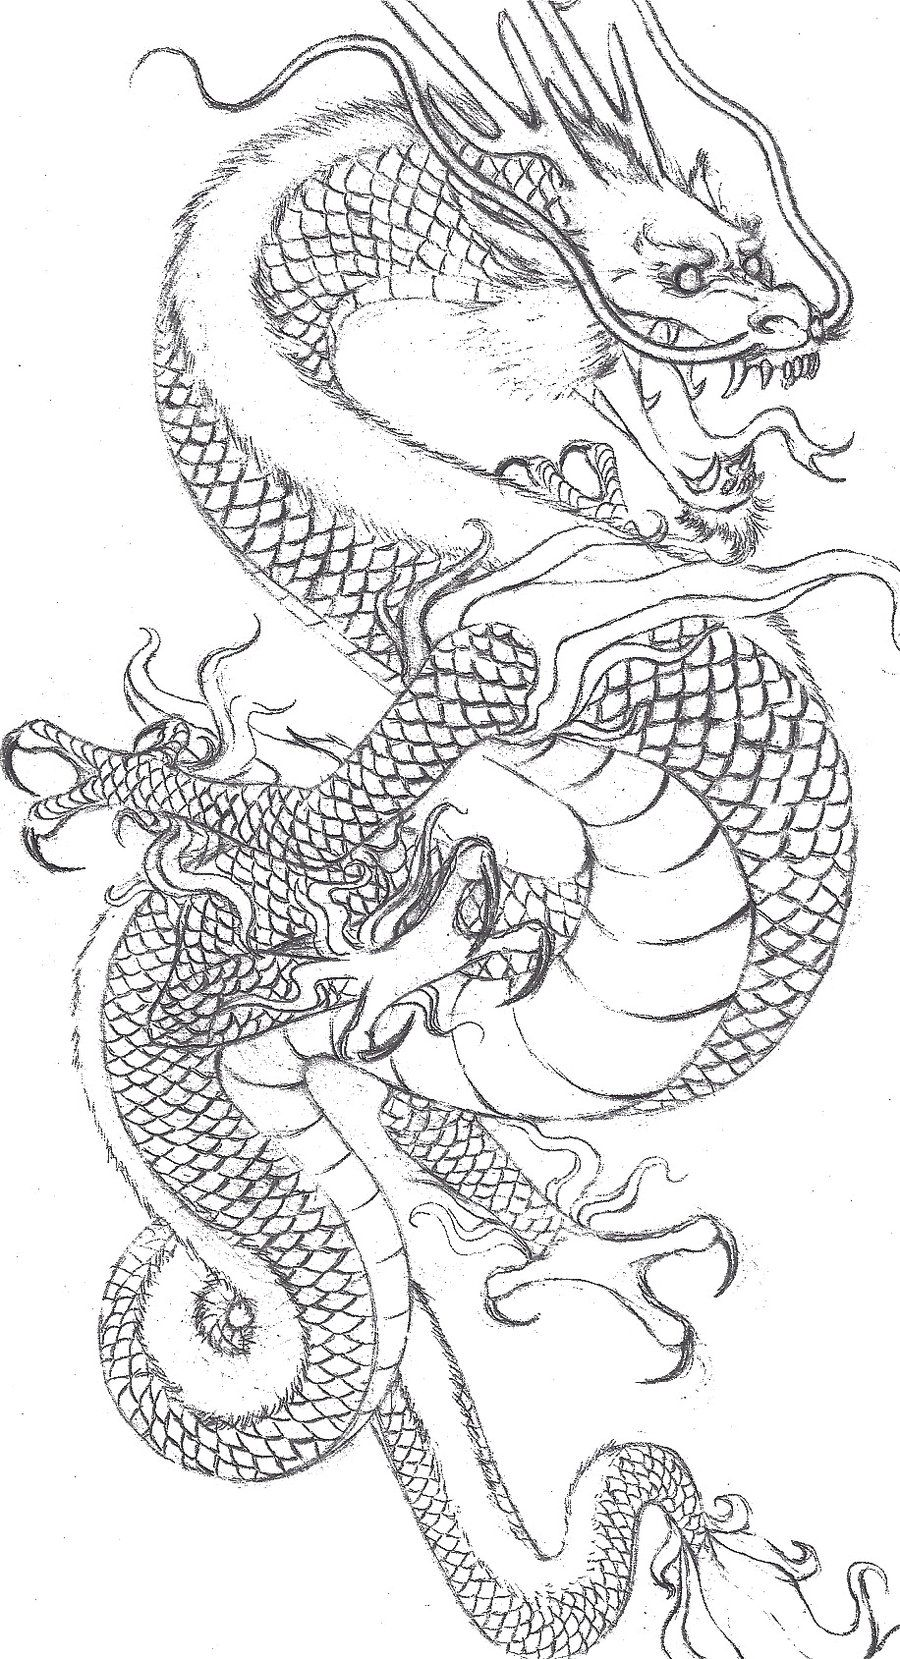 Japanese Tattoo Google Sogning Japanese Tattoo Japanese Dragon Tattoo Dragon Tattoo Designs